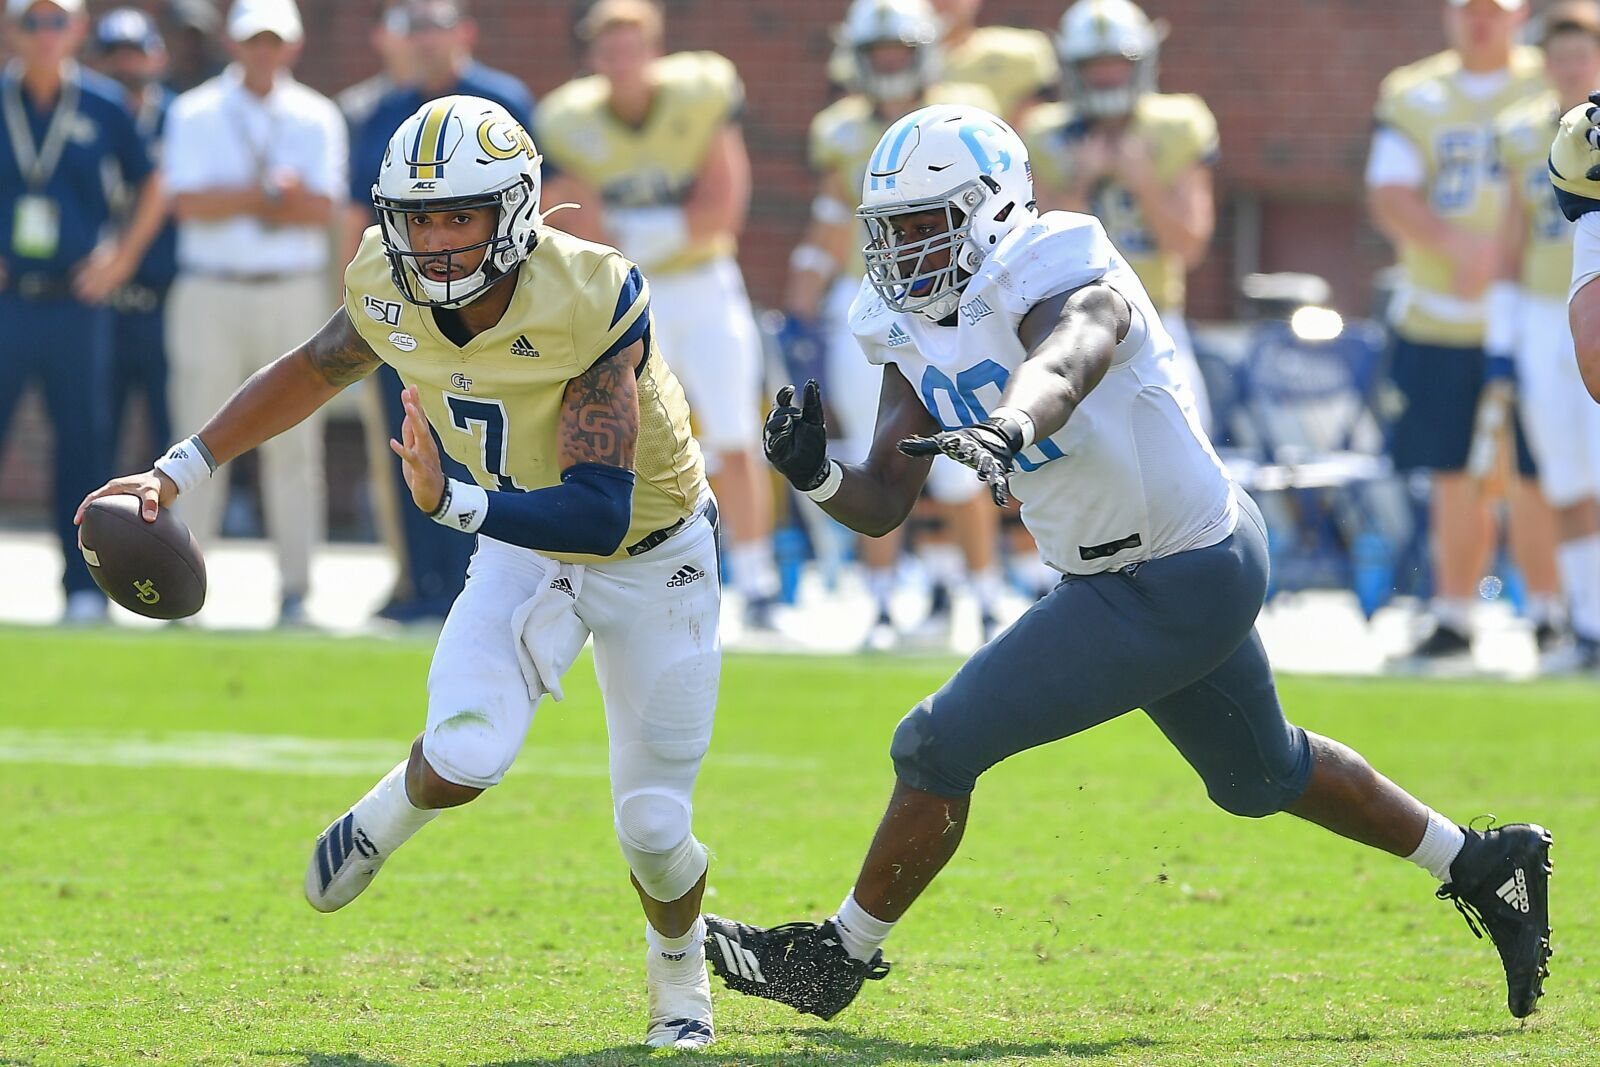 The ACC should be relegated to Group of Five status